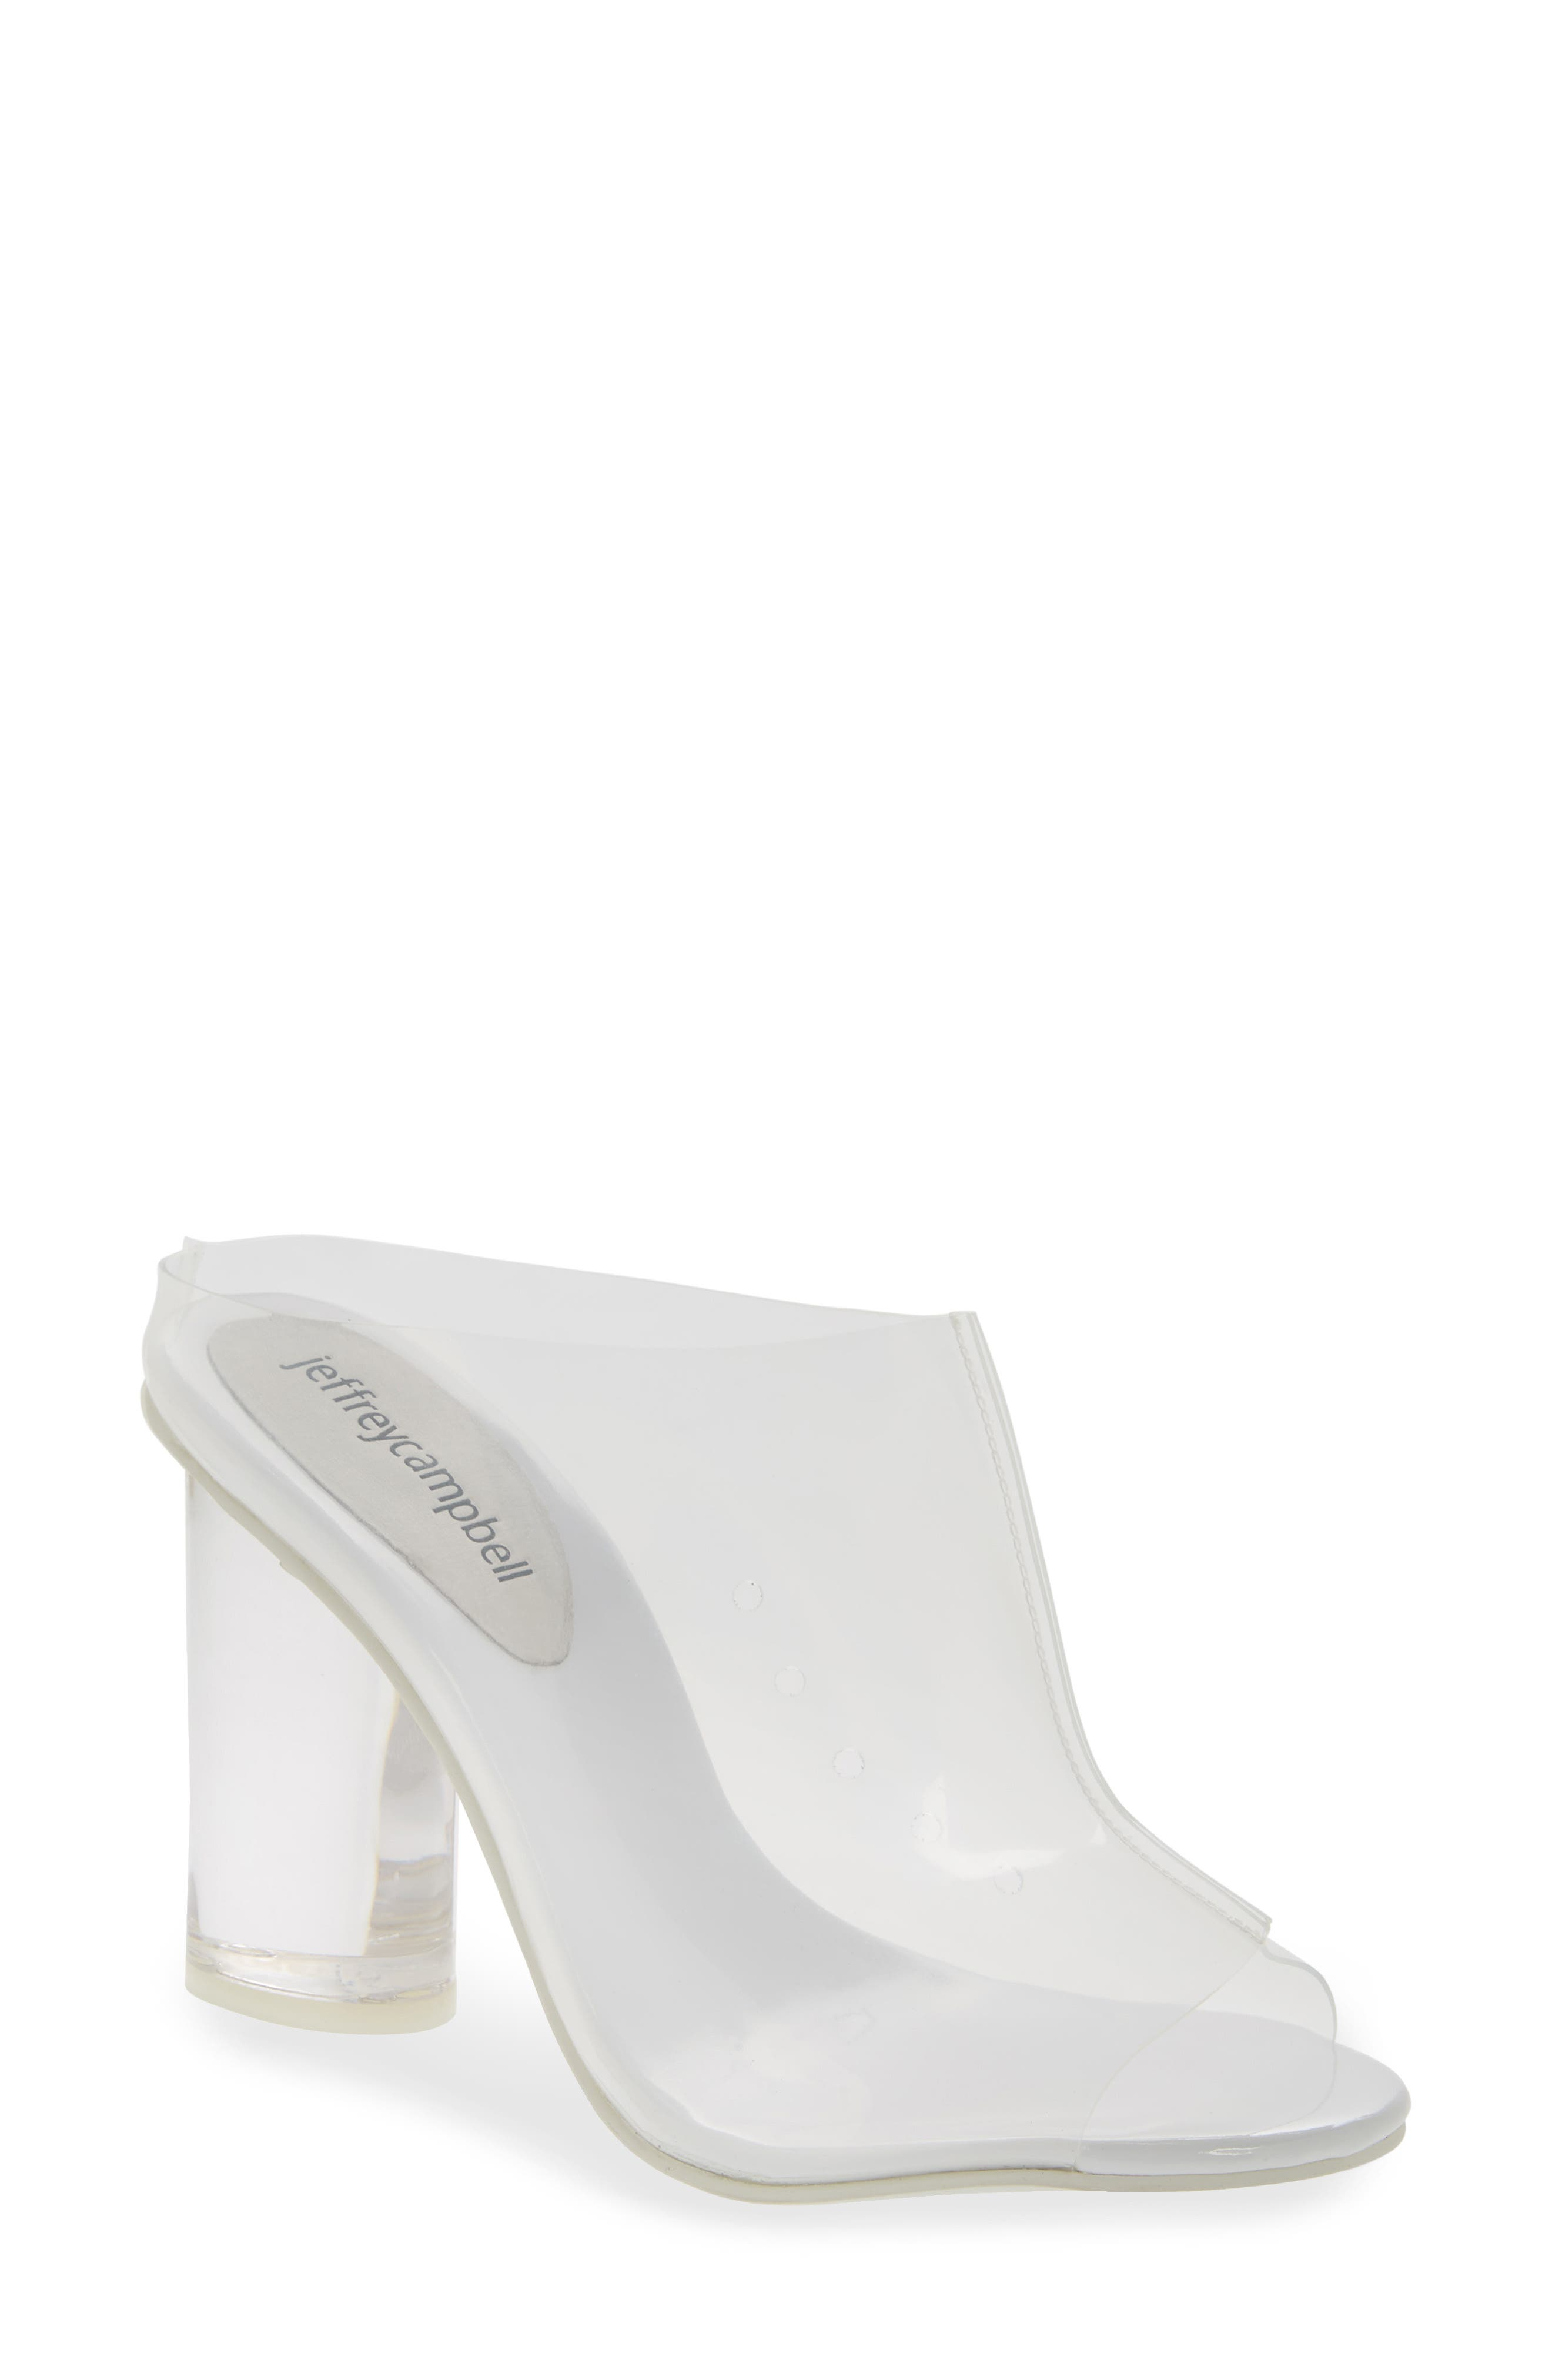 Divinity Column Heel Mule,                             Main thumbnail 1, color,                             CLEAR